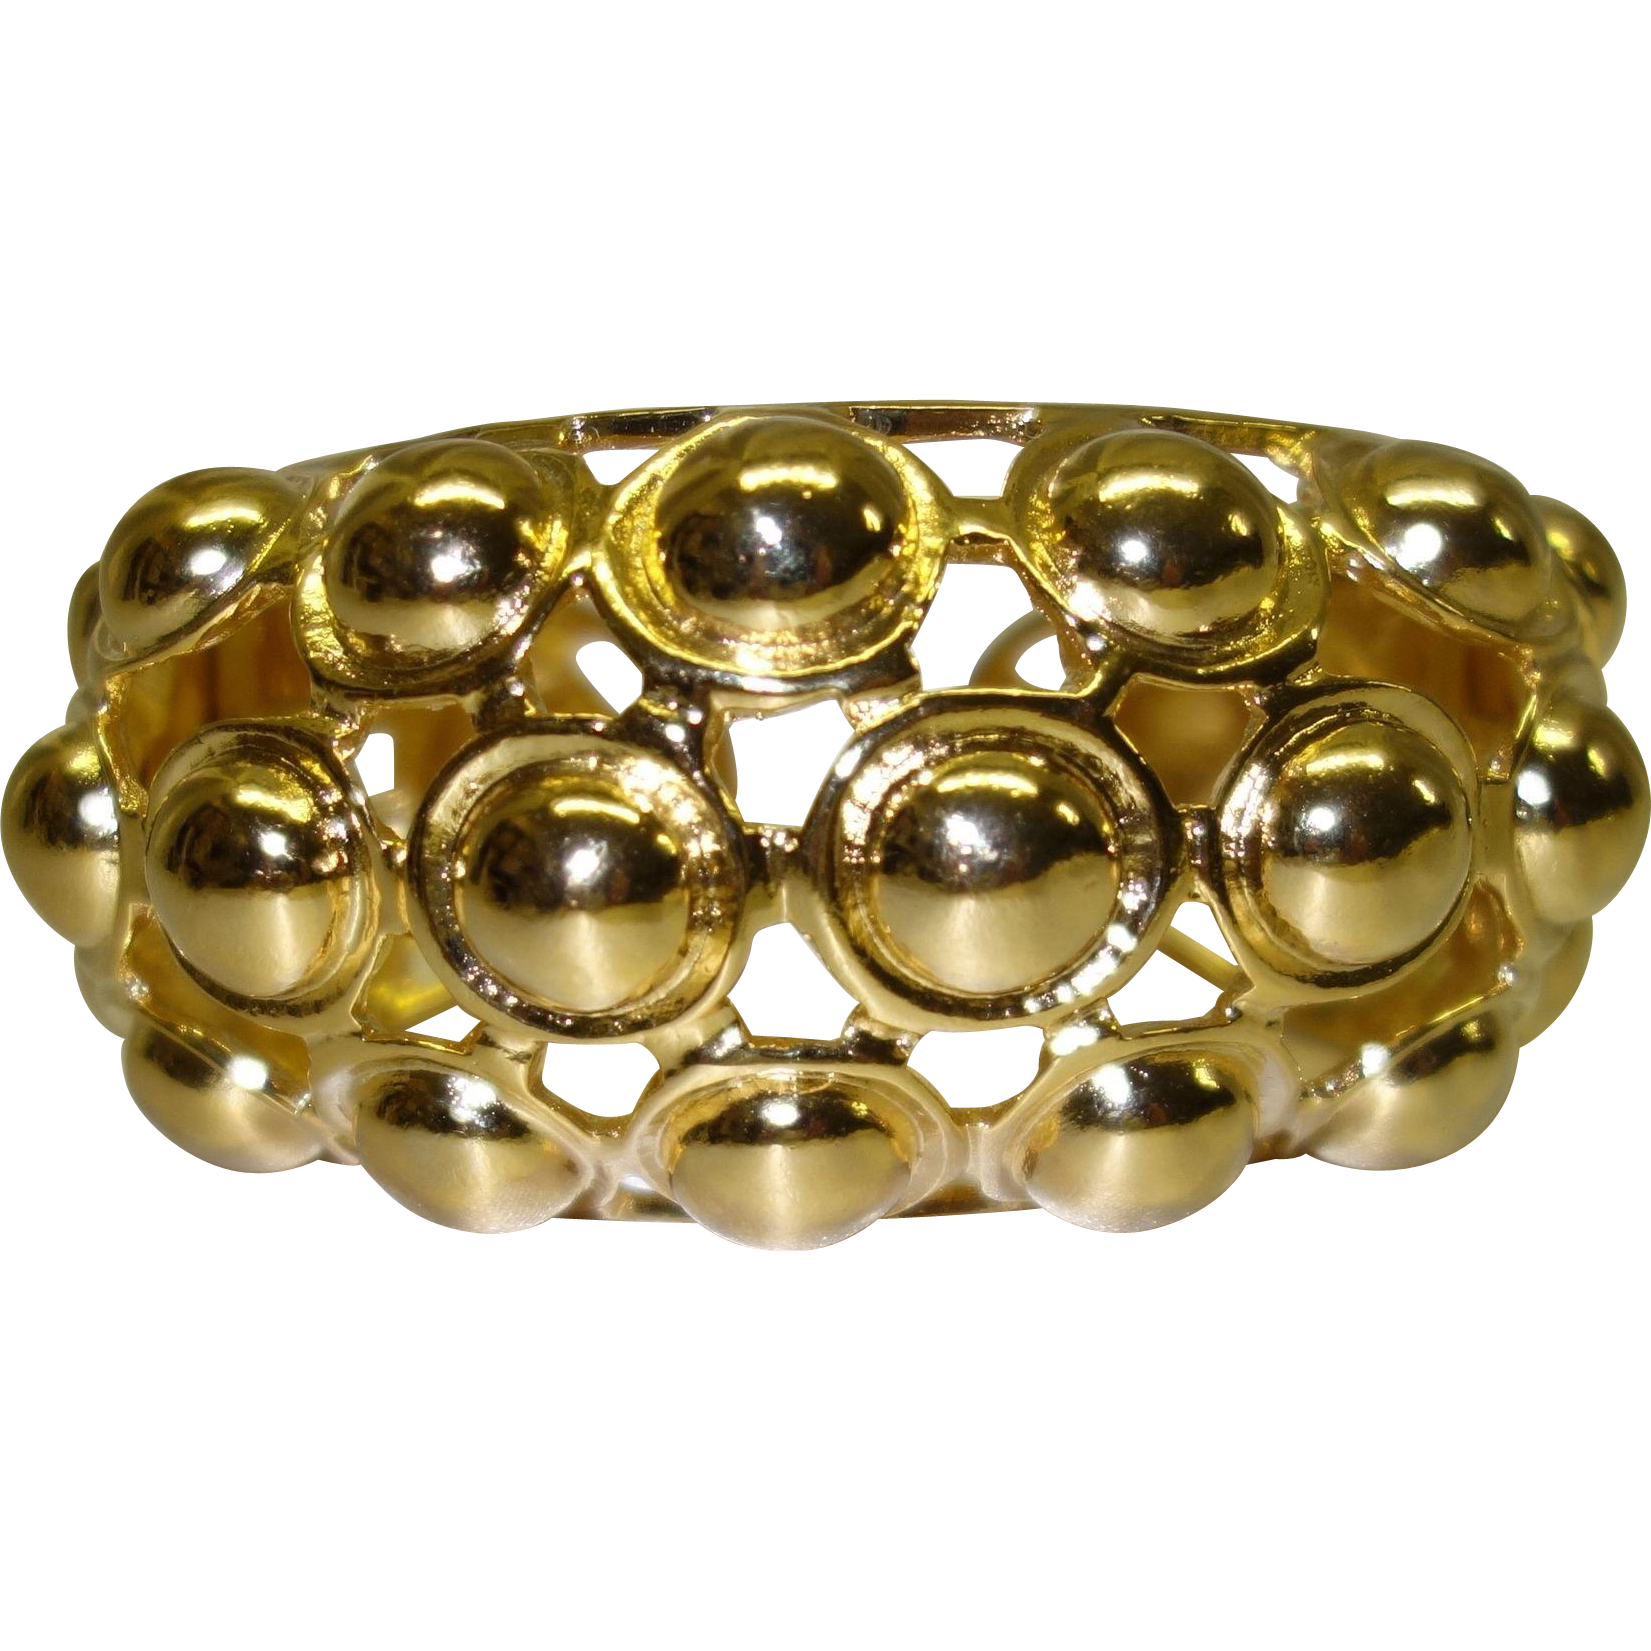 Vintage Kenneth Jay Lane Gold Tone Metal Hinged Cuff Bracelet